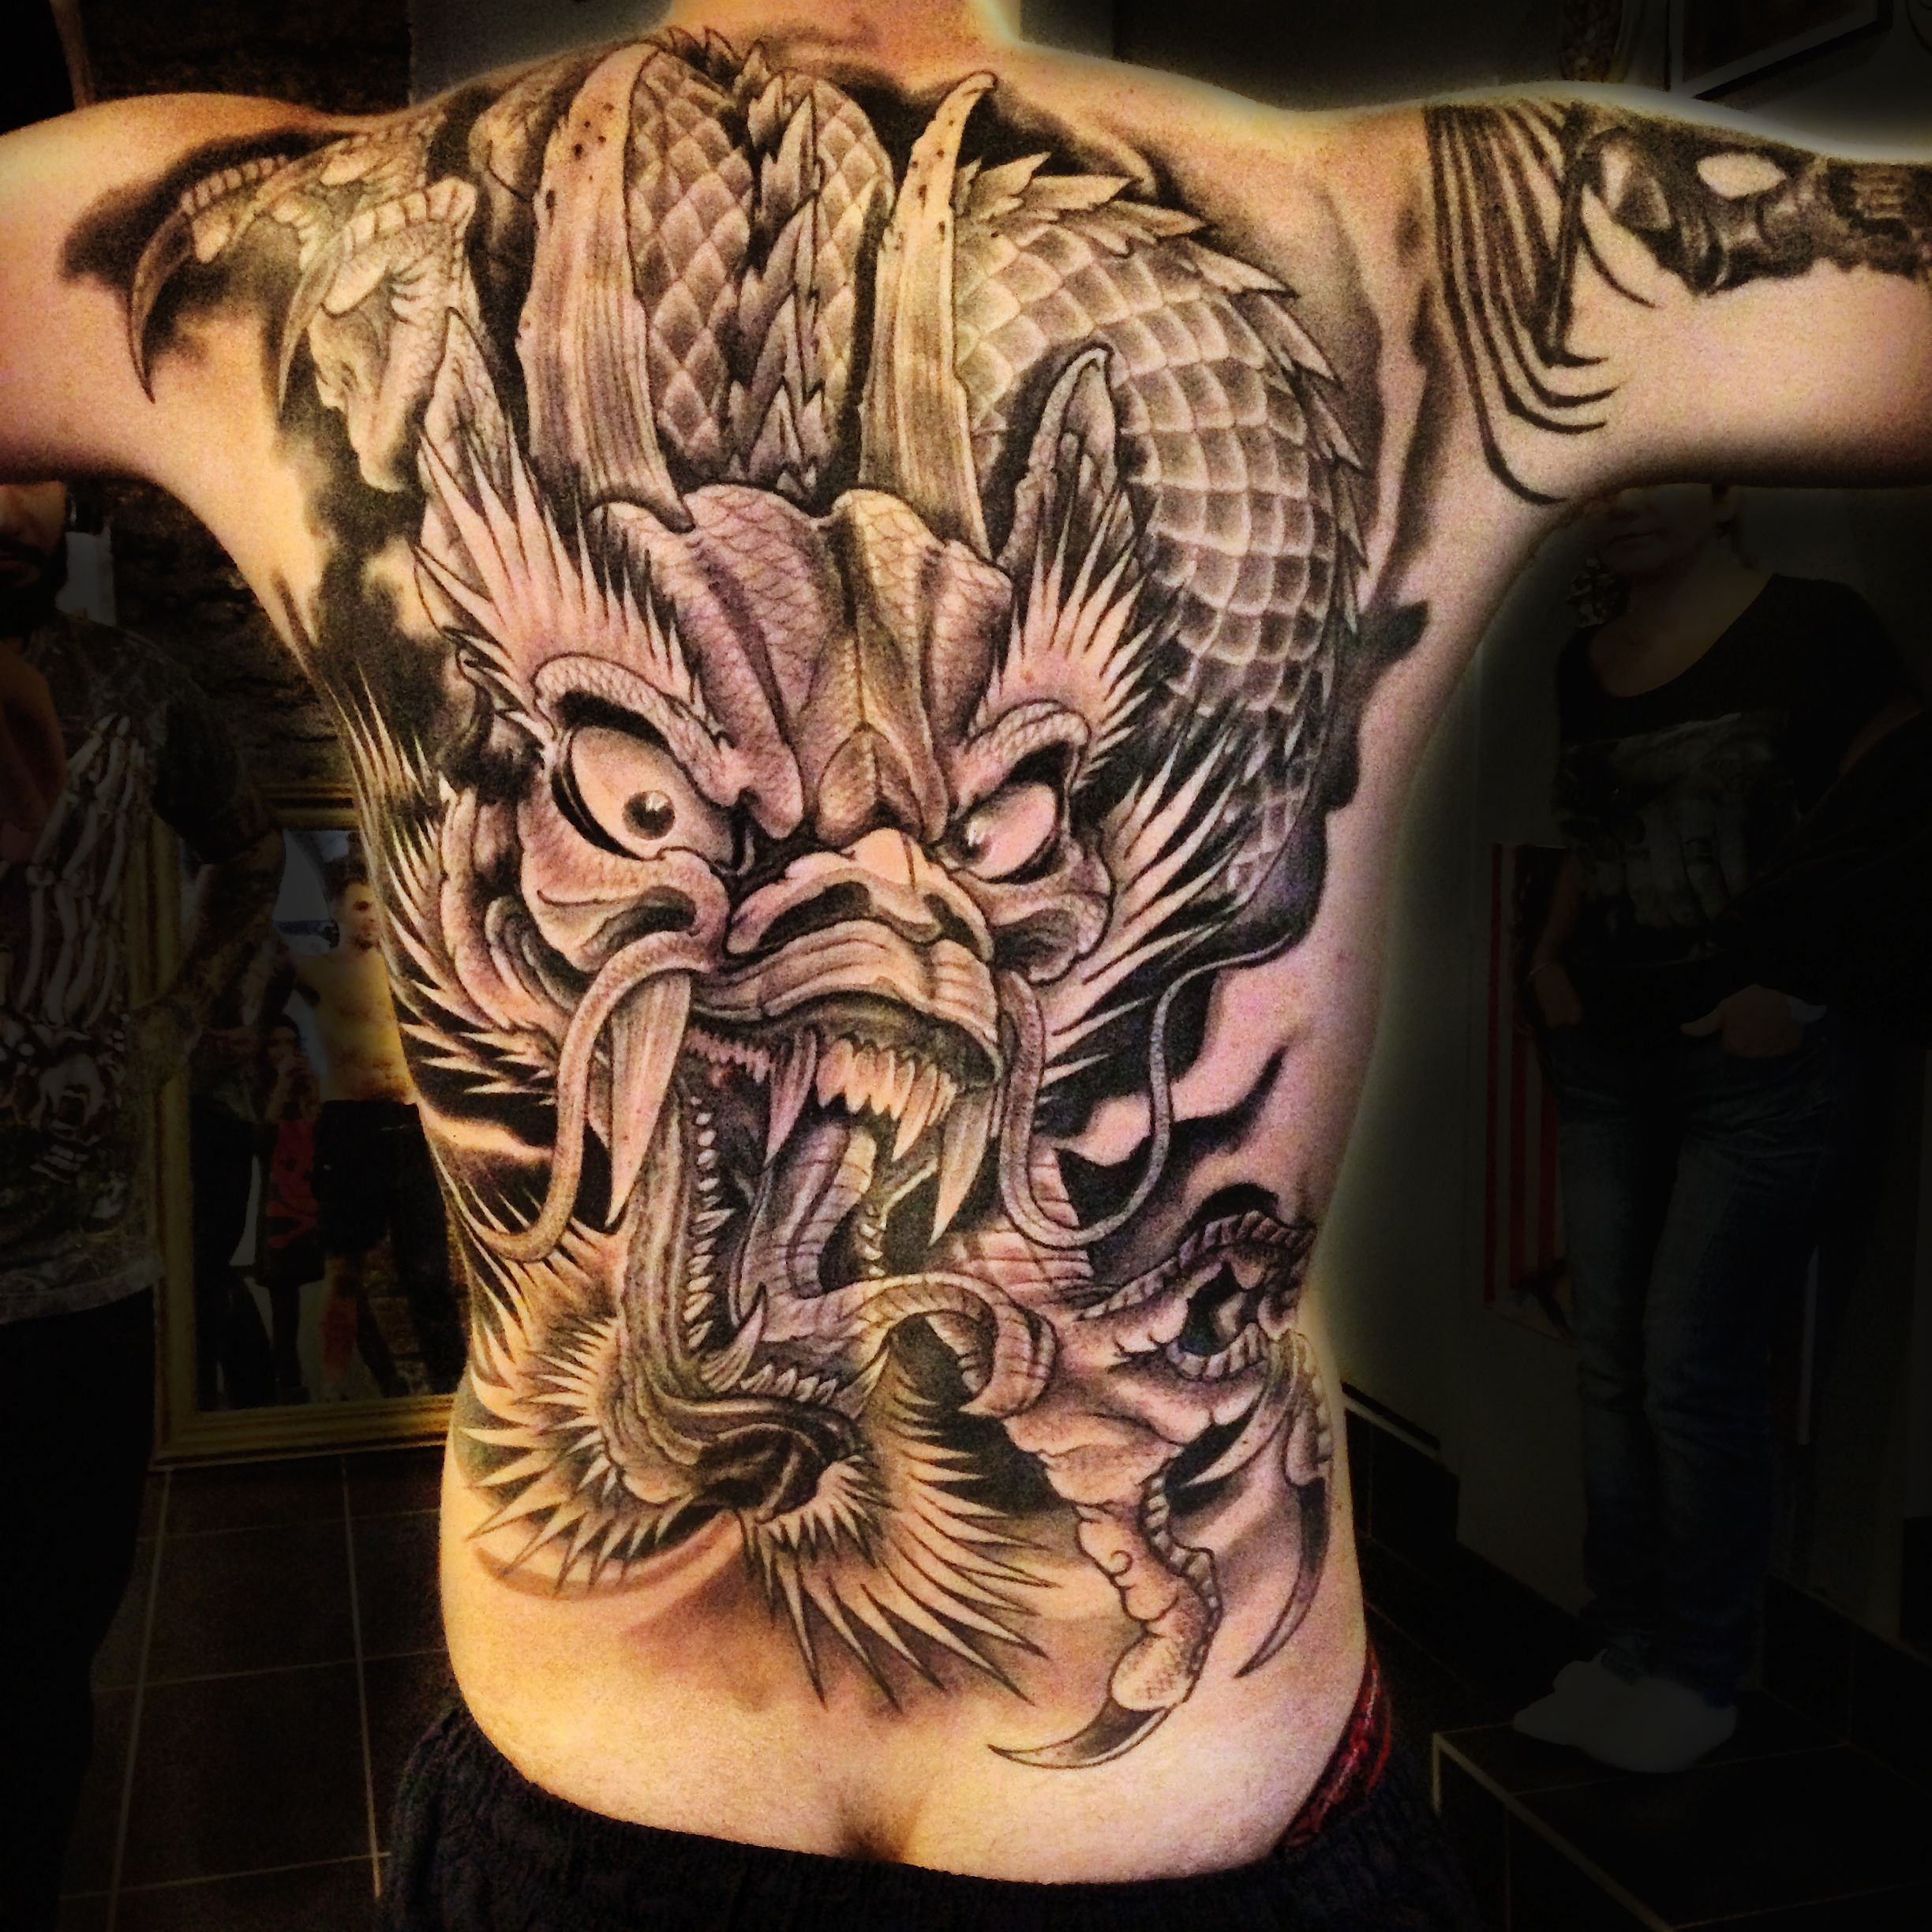 japanese dragon tattoo full back ink 39 a tattoo lyon tattoos pinterest. Black Bedroom Furniture Sets. Home Design Ideas